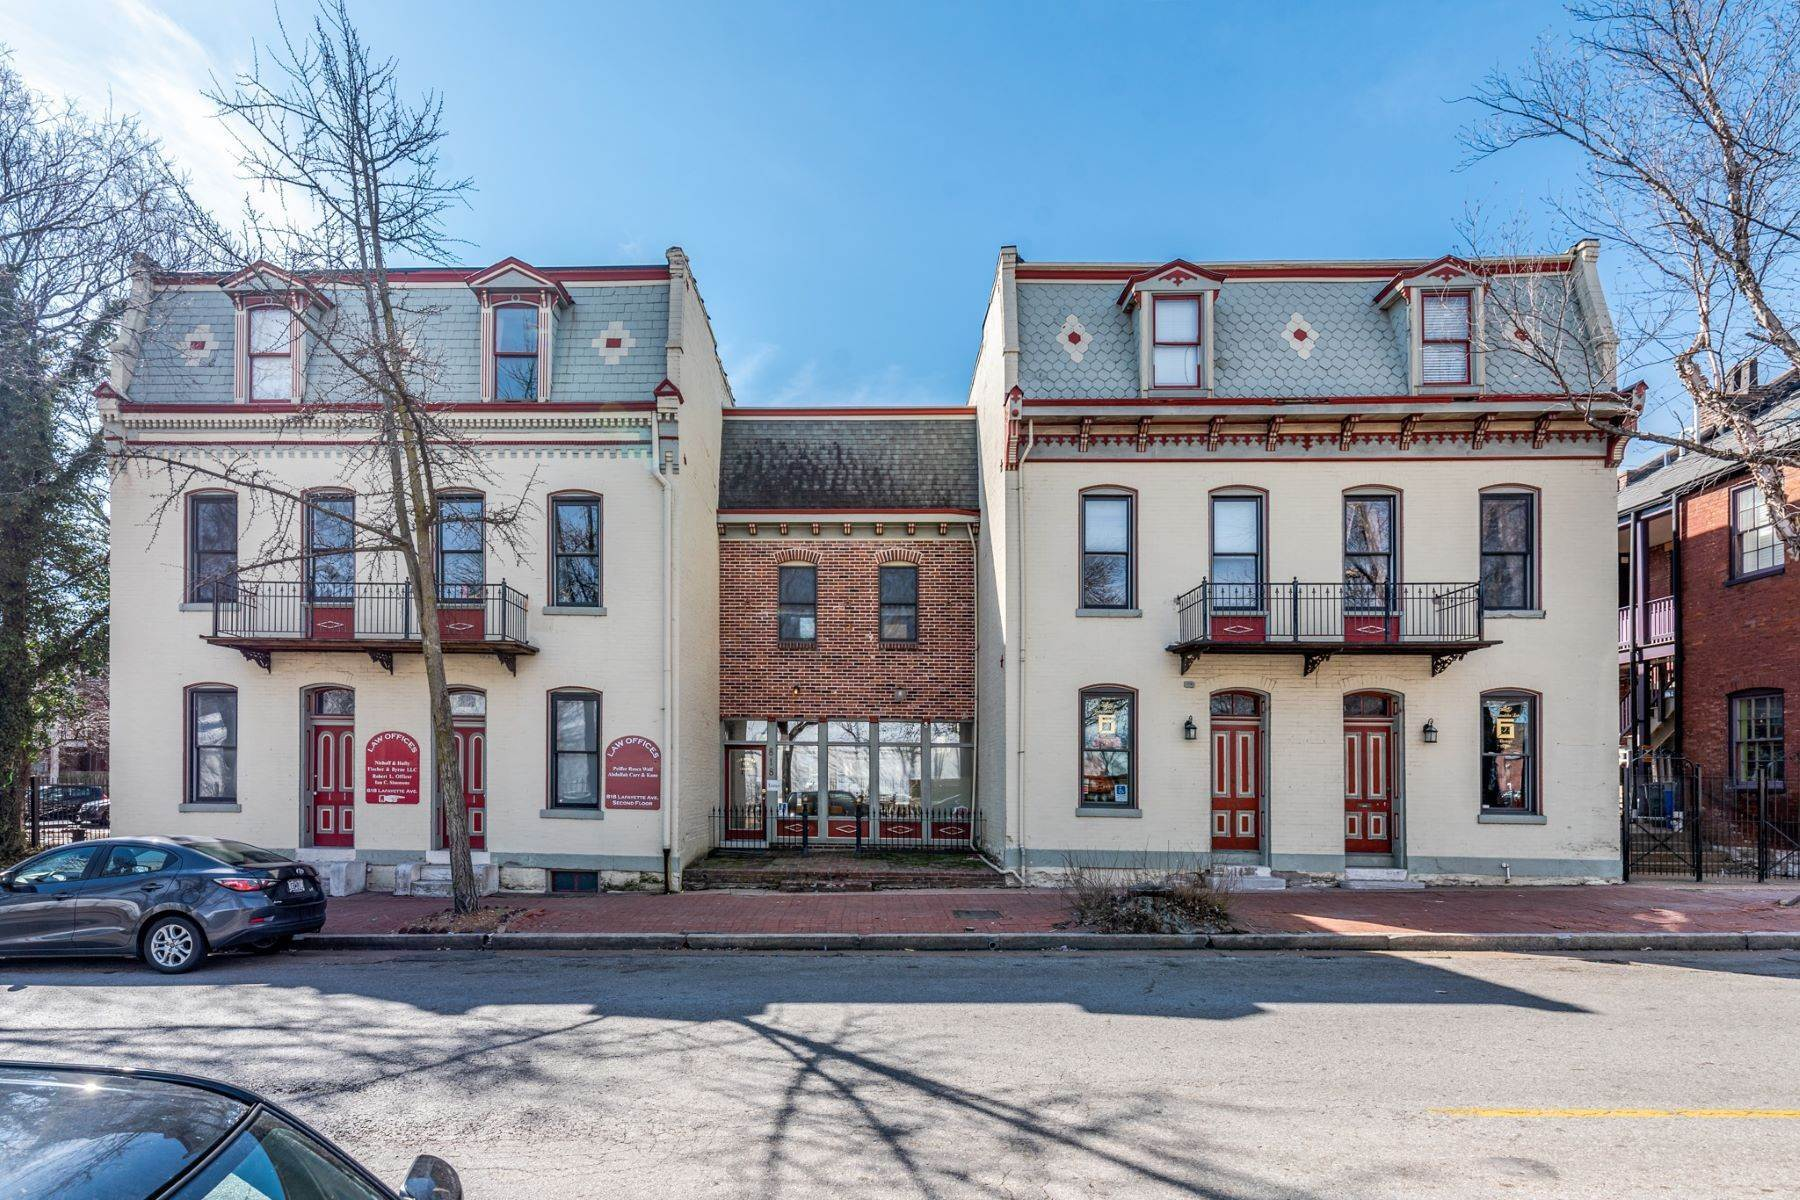 Property for Sale at Historic Mixed-Use in Soulard 816 Lafayette Avenue St. Louis, Missouri 63104 United States